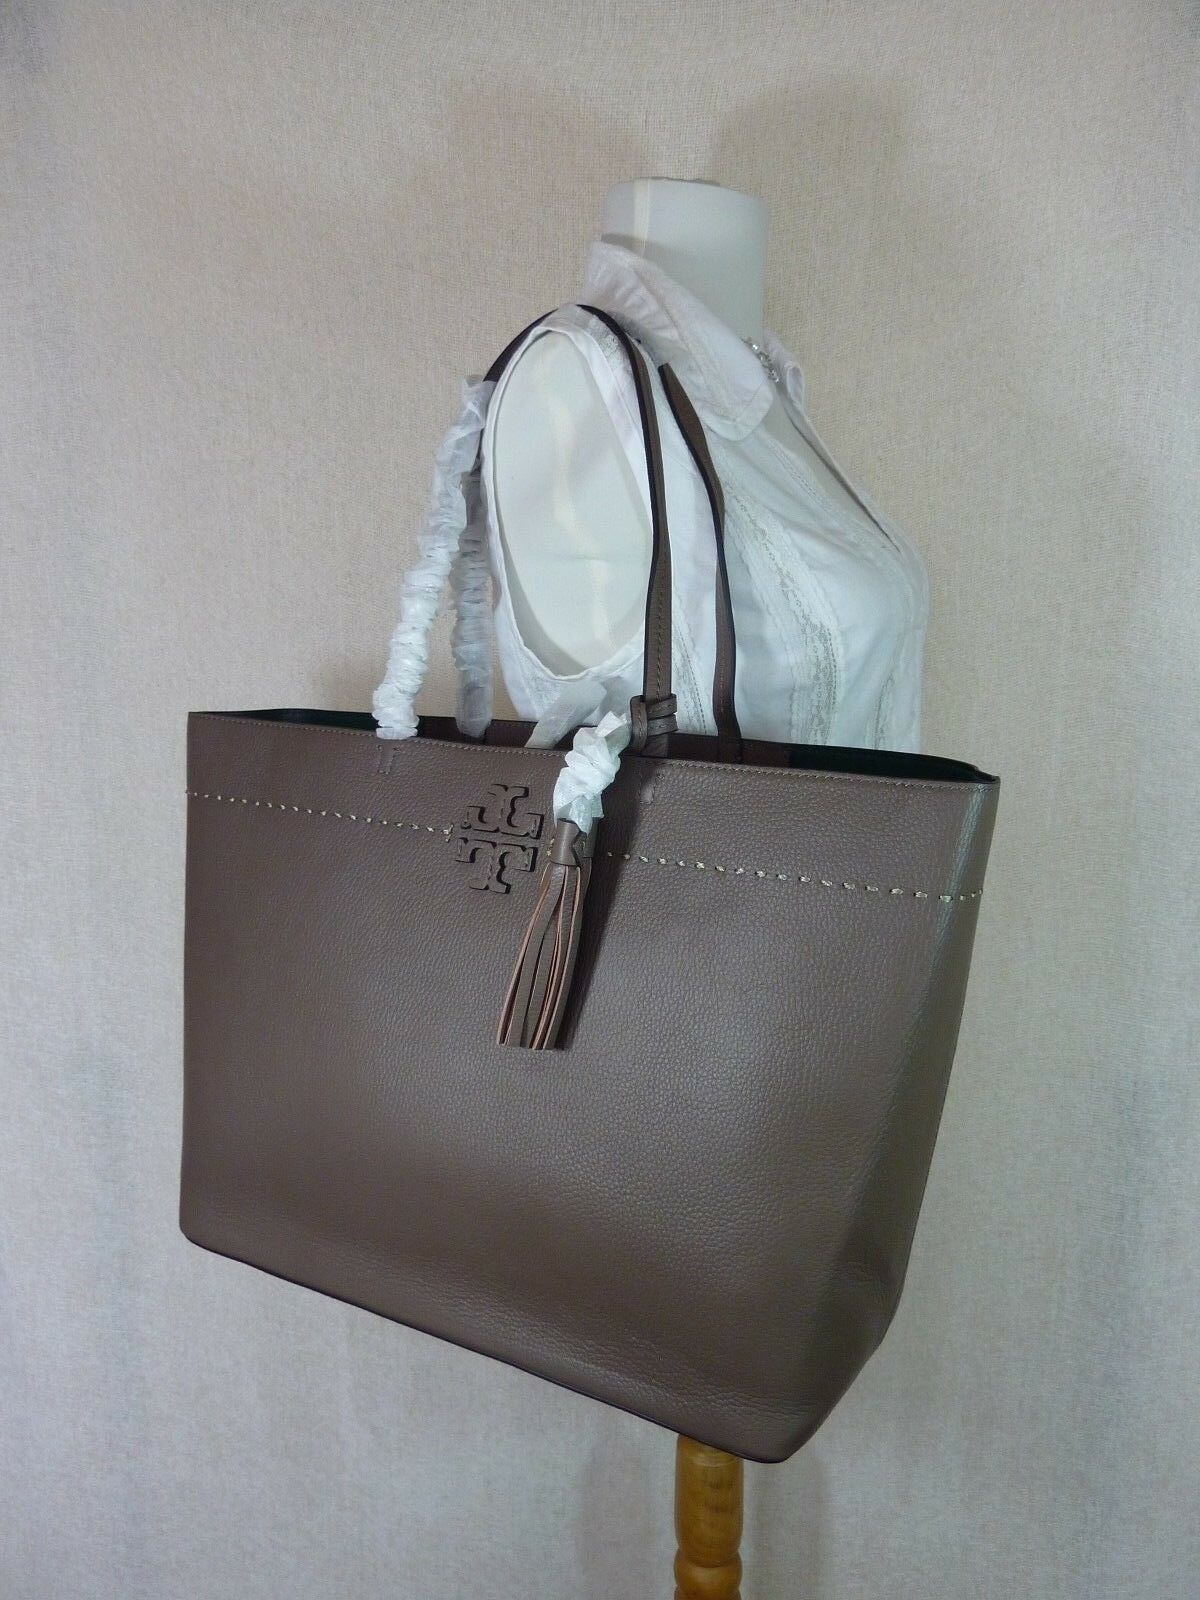 NWT Tory Burch Silver Maple/Malachite Leather McGraw Tote Bag $398 image 2